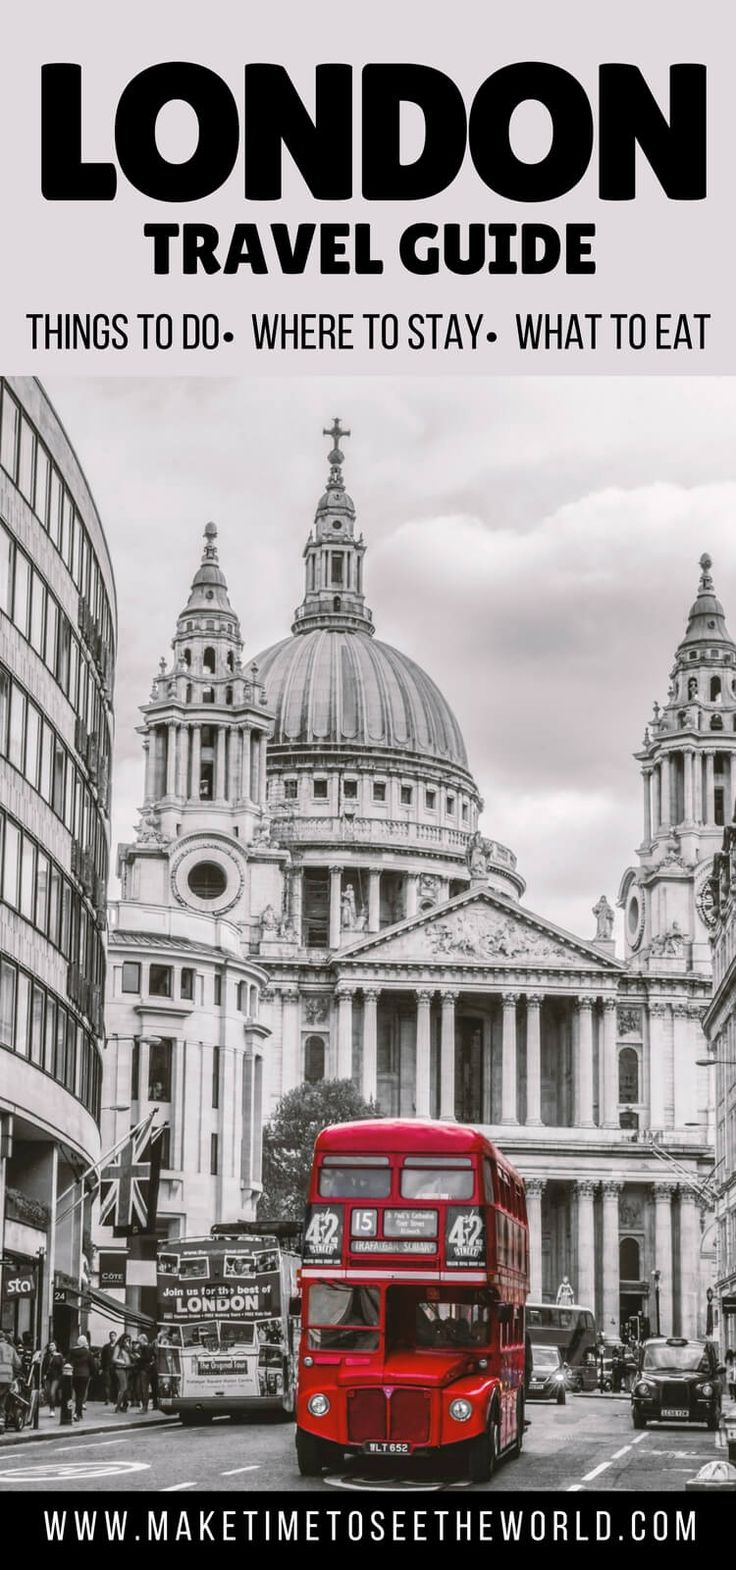 Wondering What to do in London on a weekend break? Read This! Our London Travel Guide has the Top Things to do in London + Where to Stay & What to Eat! ***************************************************************************** London | UK | London Things to do | Things to do in London | Weekend in London | What to do in London | 48 Hours in London | London Travel Guide | London Bucket List | London Activities | London Tours | Day trips from London | London Day trips